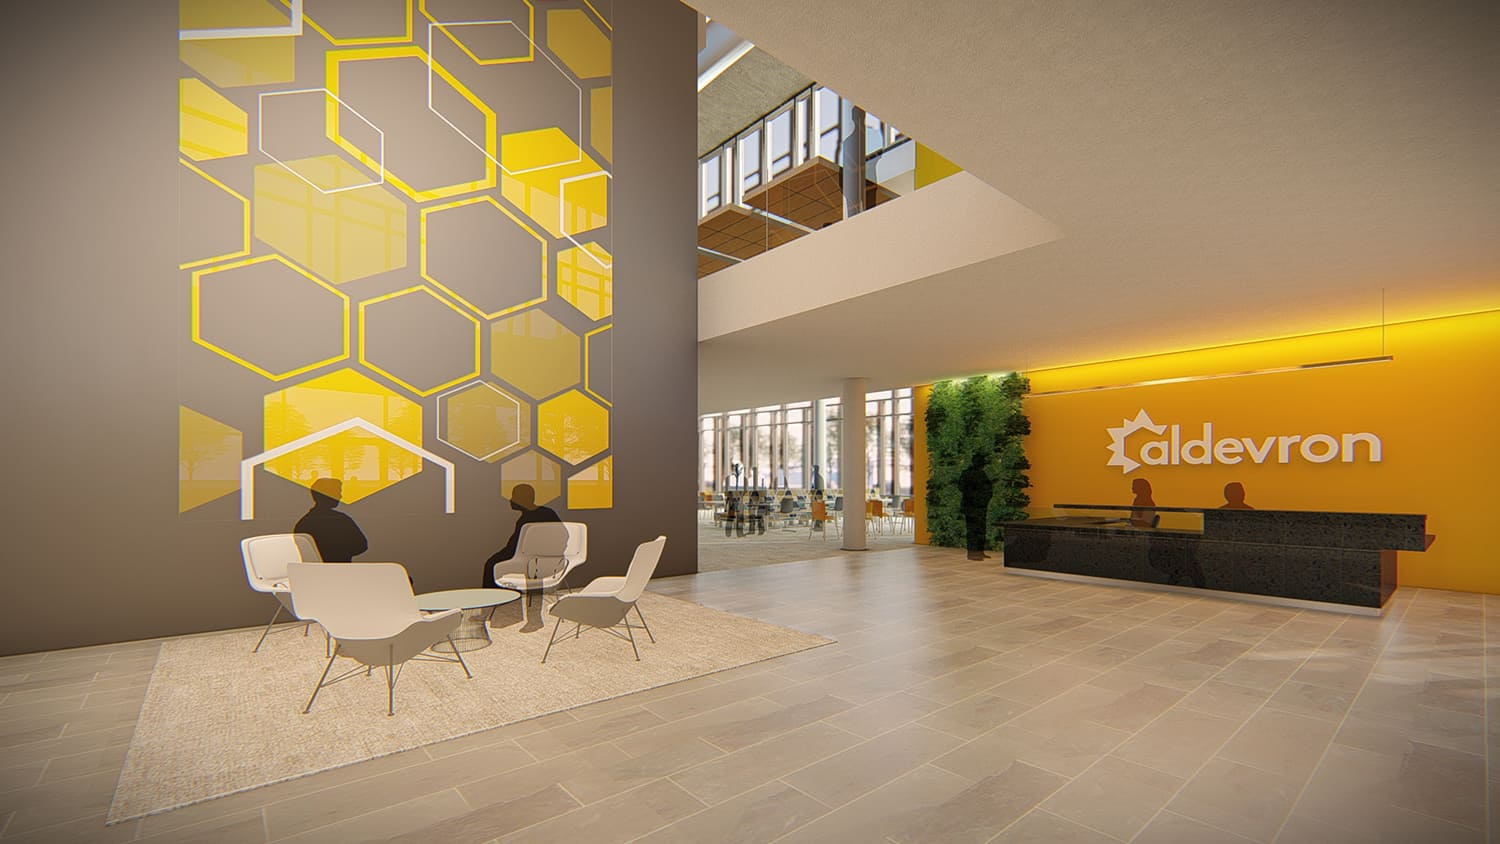 Entry into the community space, featuring branded hexagon wall graphics.